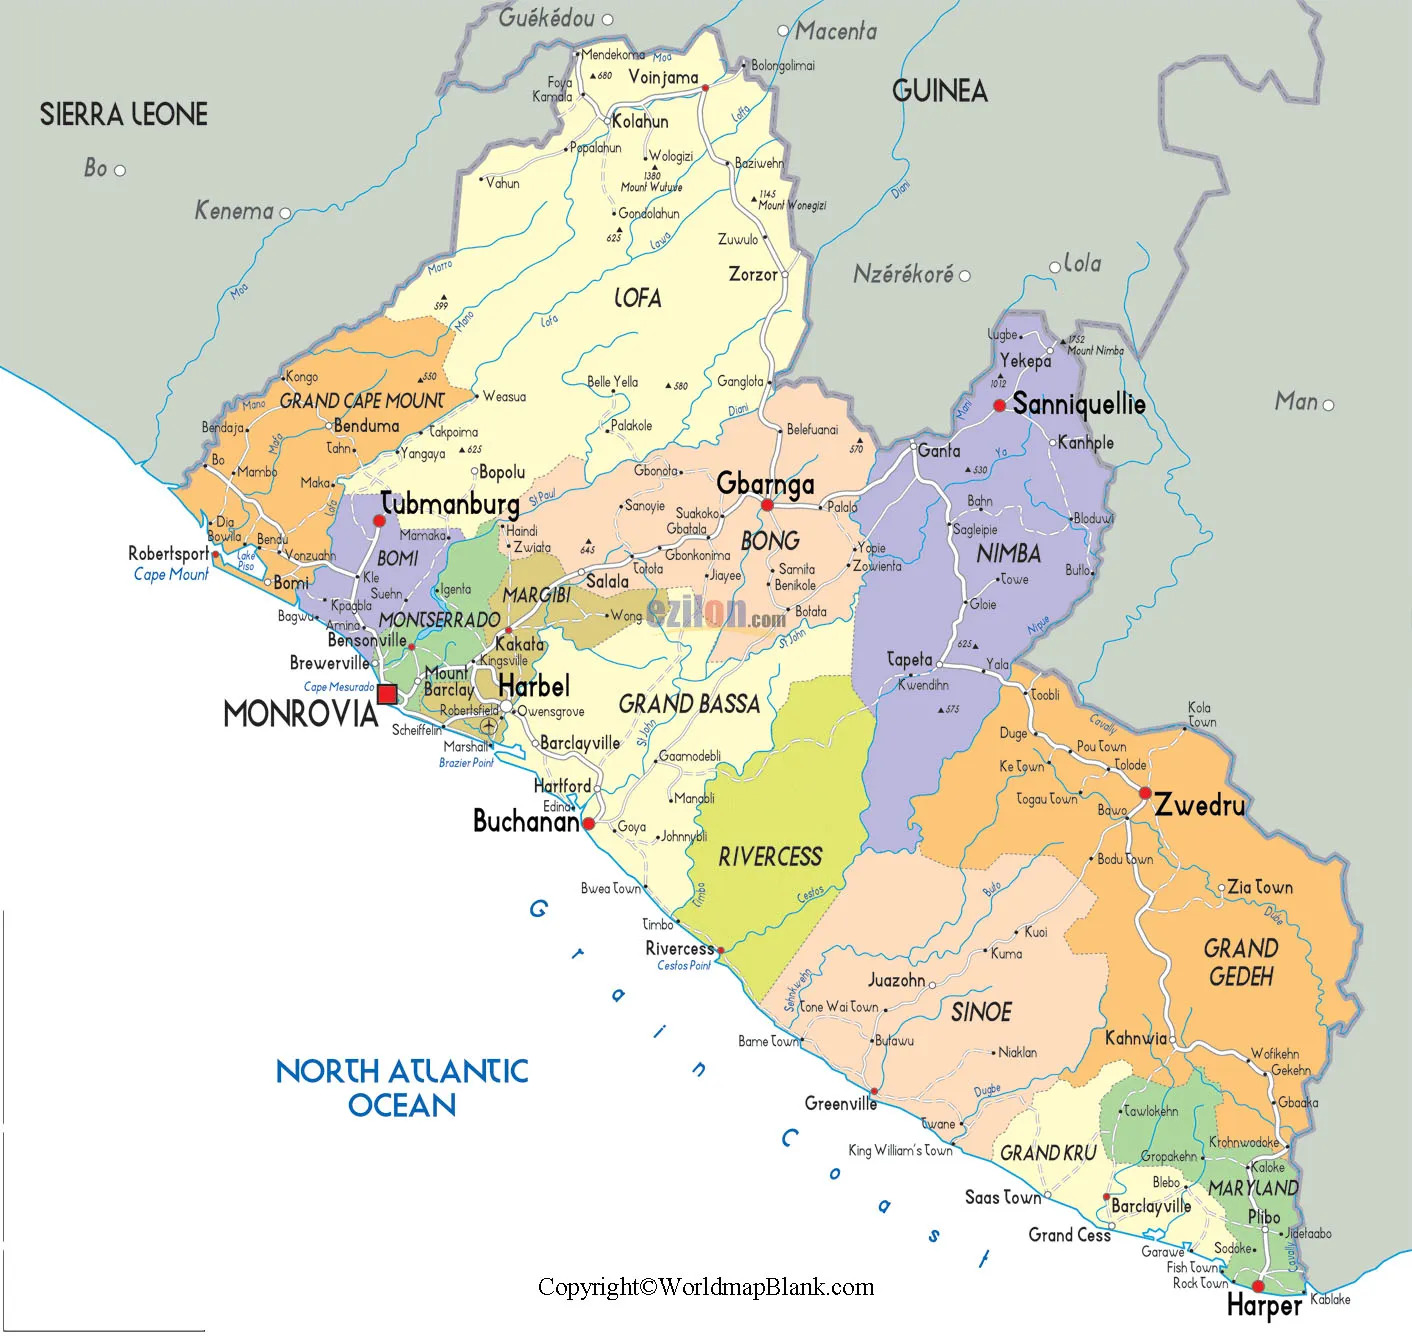 Labeled Liberia with Capital